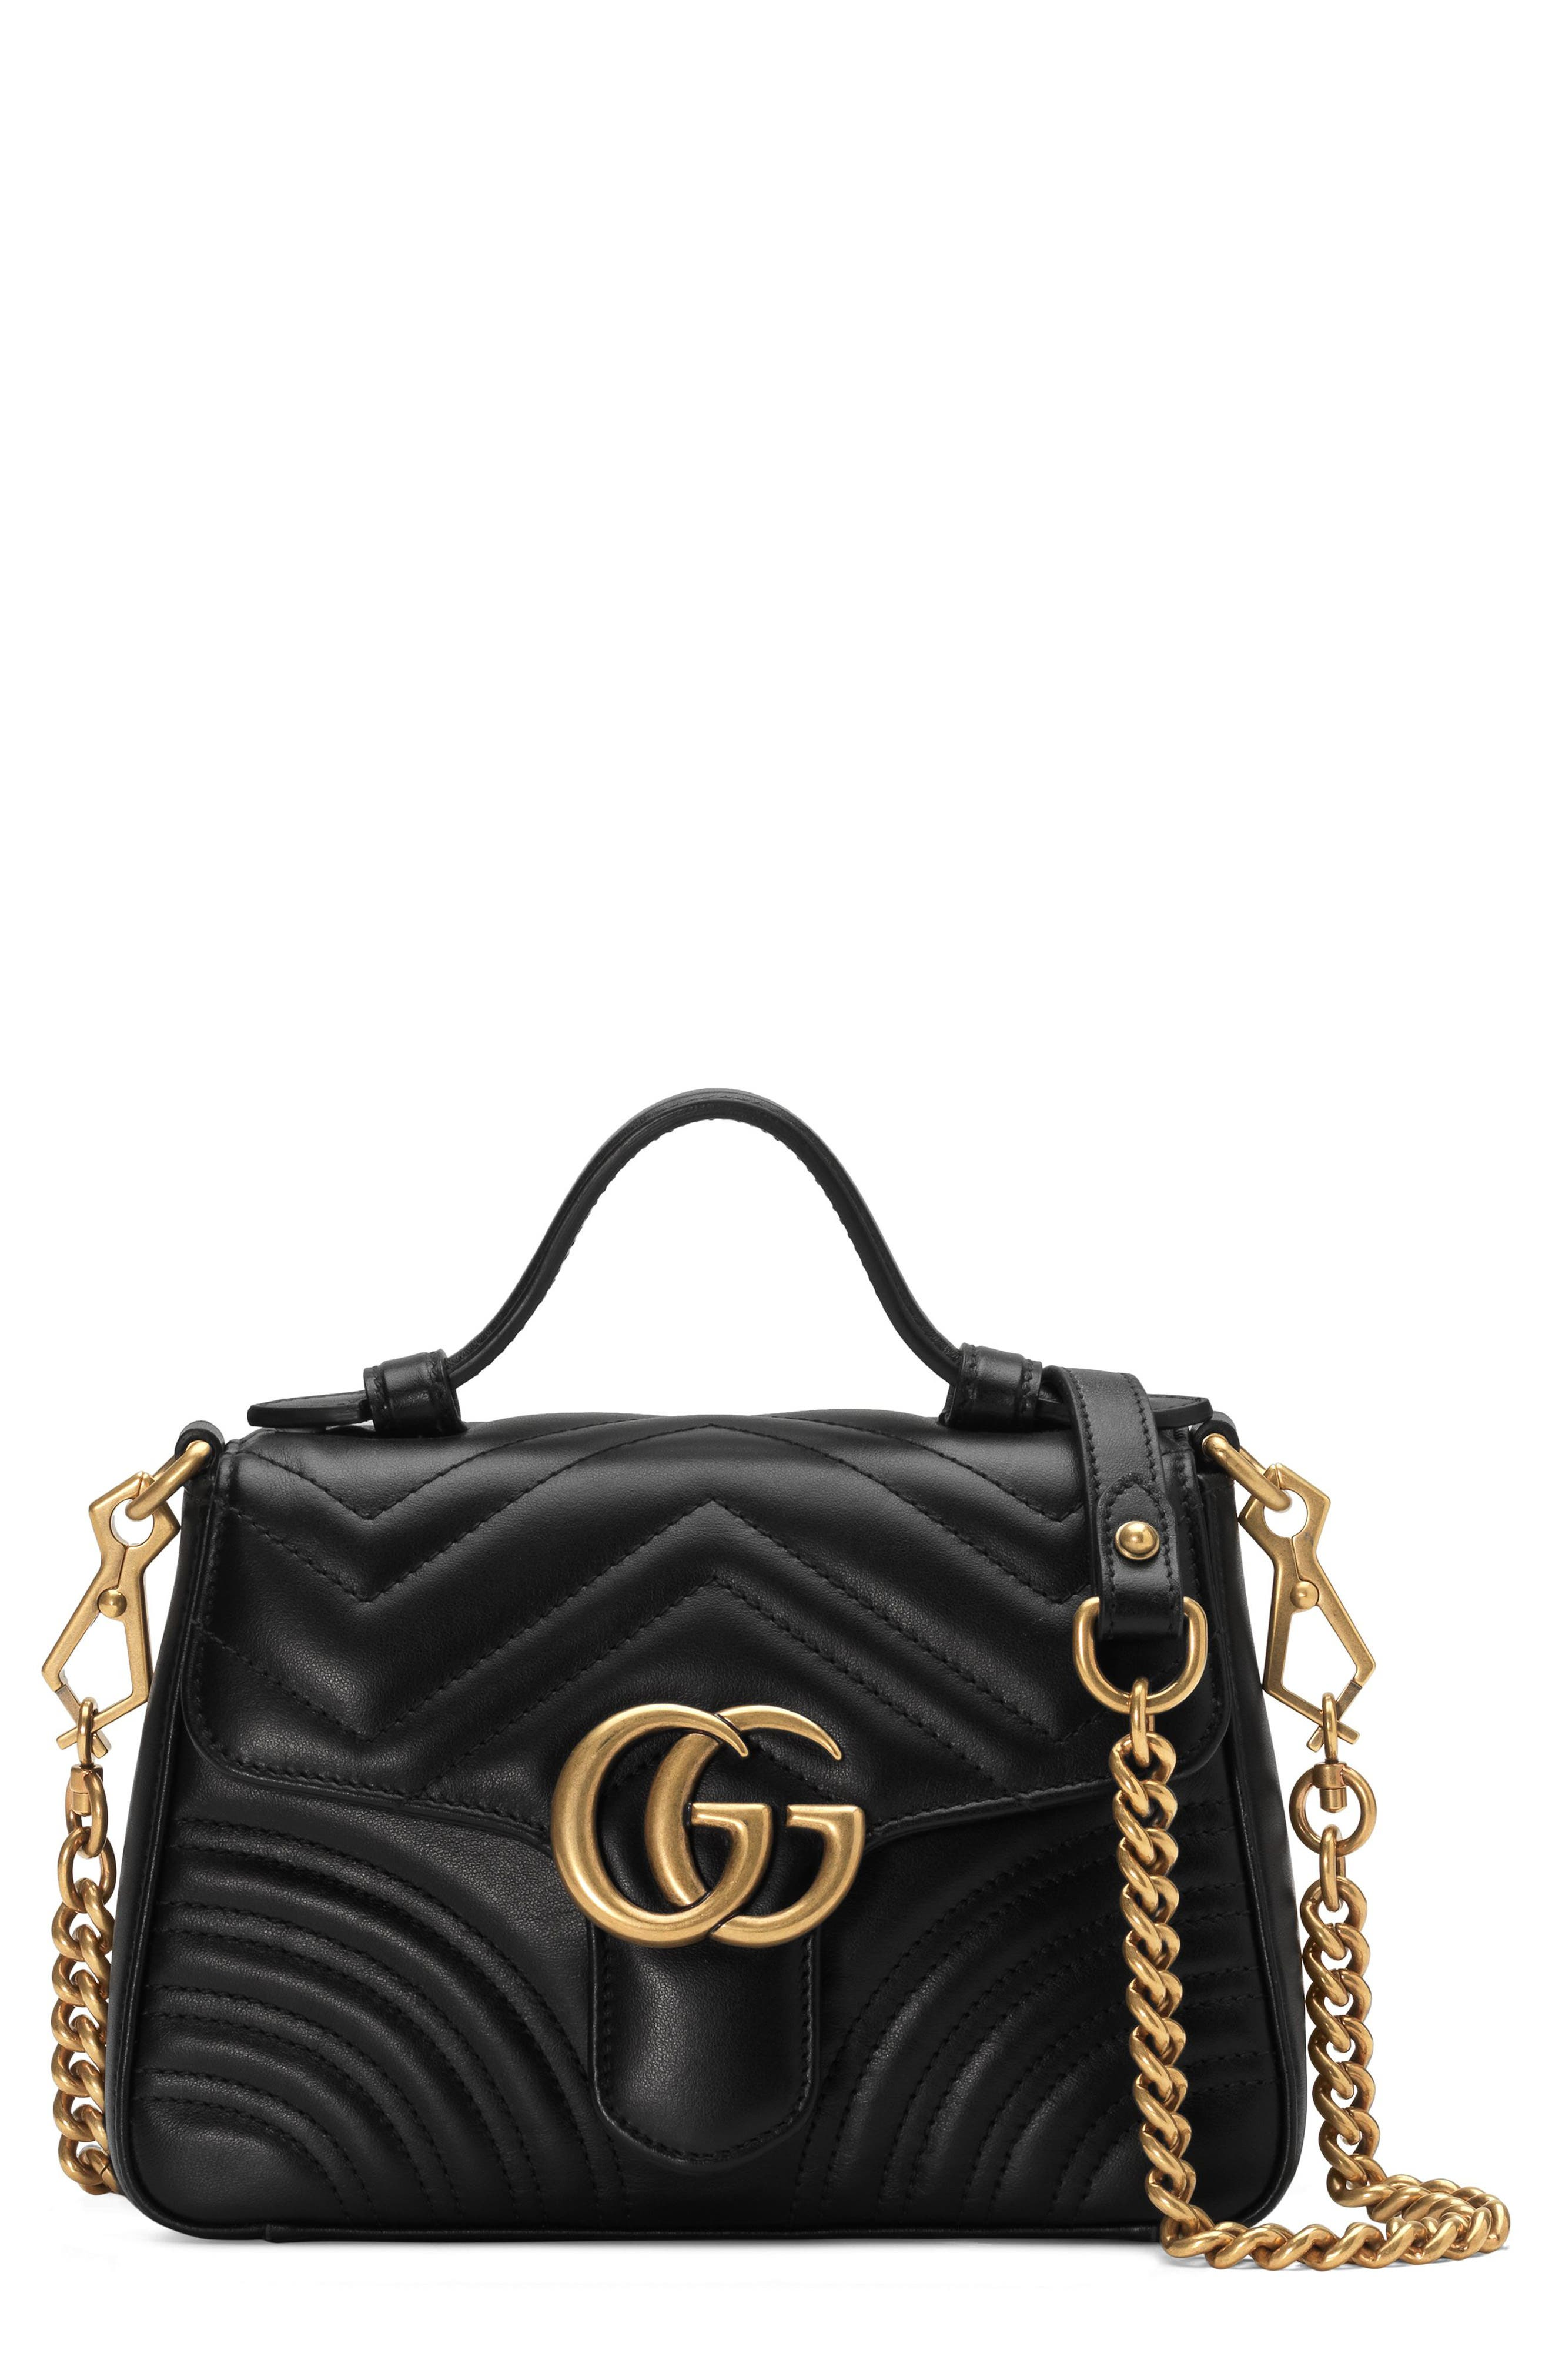 Marmont 2.0 Leather Top Handle Bag,                             Main thumbnail 1, color,                             NERO